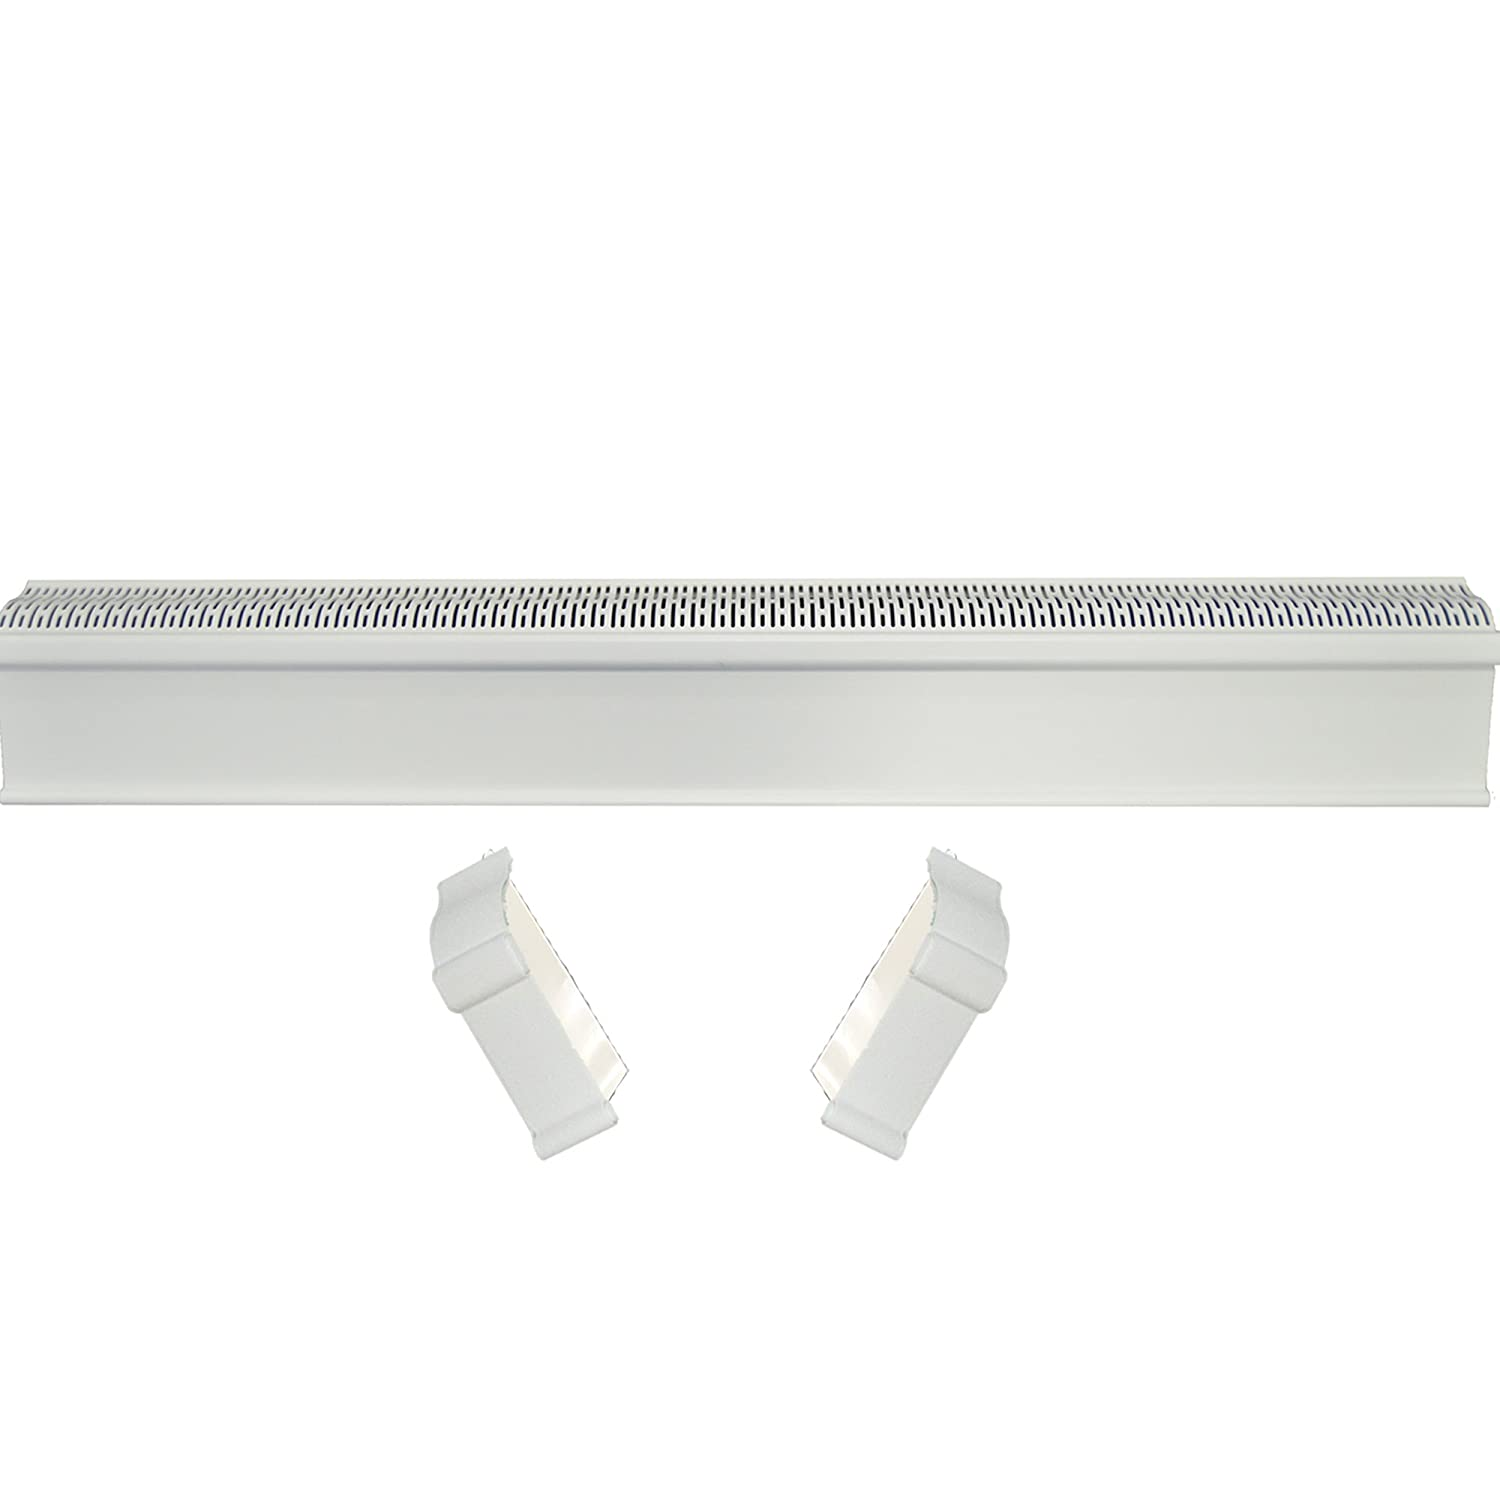 Baseboard Heat Covers, Baseboard Heater Cover WITH End Caps (Left and Right)   Hot Water Heating Cover Enclosure, Direct Replacement Kit for Slant Fin - Rust Proof/Energy Efficient - 8' White